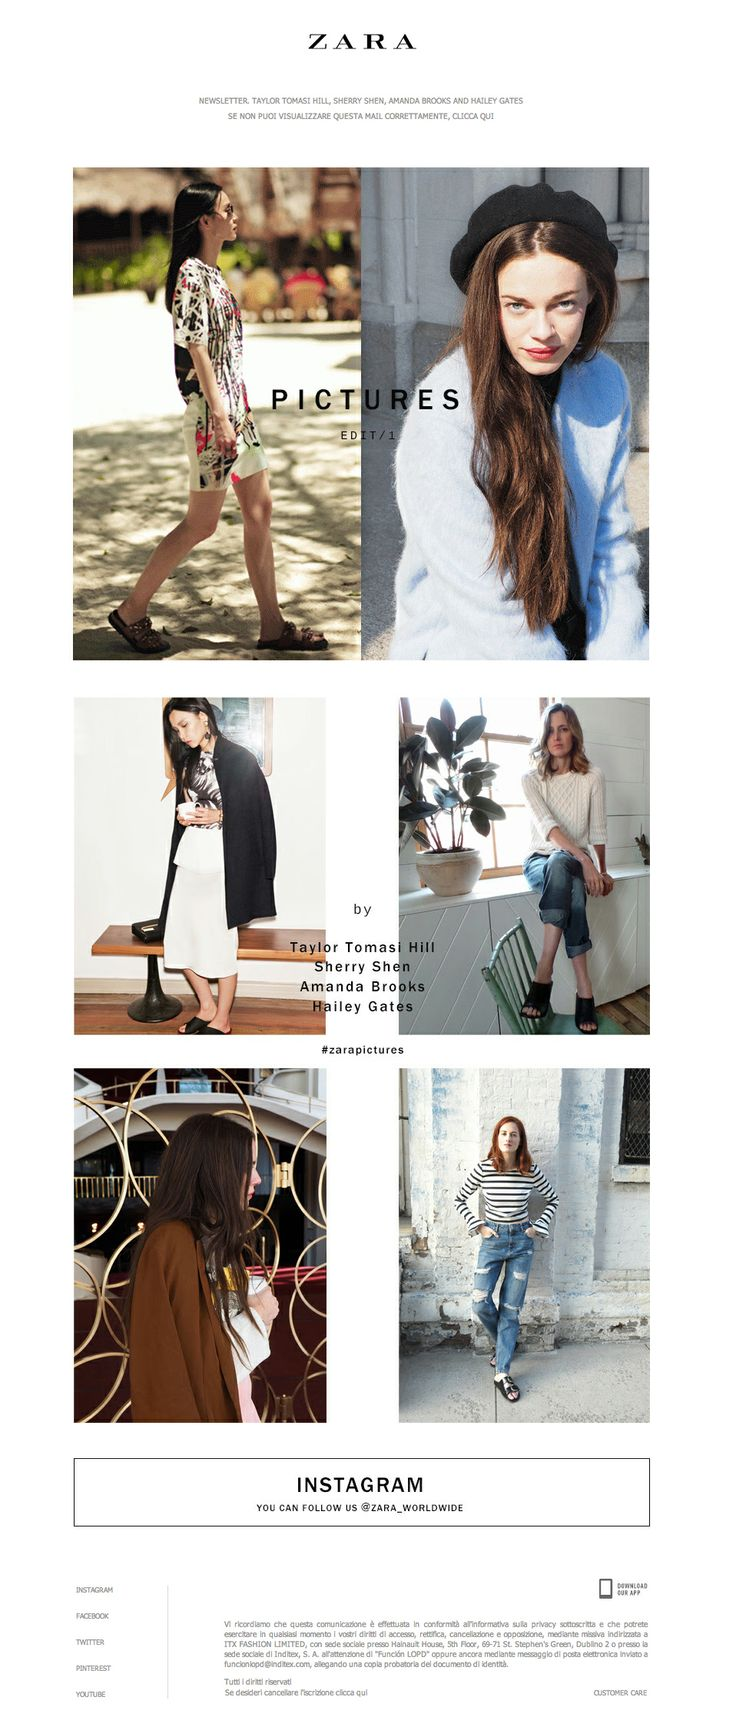 Zara poster design - Zara Poster Design Zara Poster Design Newsletter Zara 03 2014 Pictures Is Back Edit 1